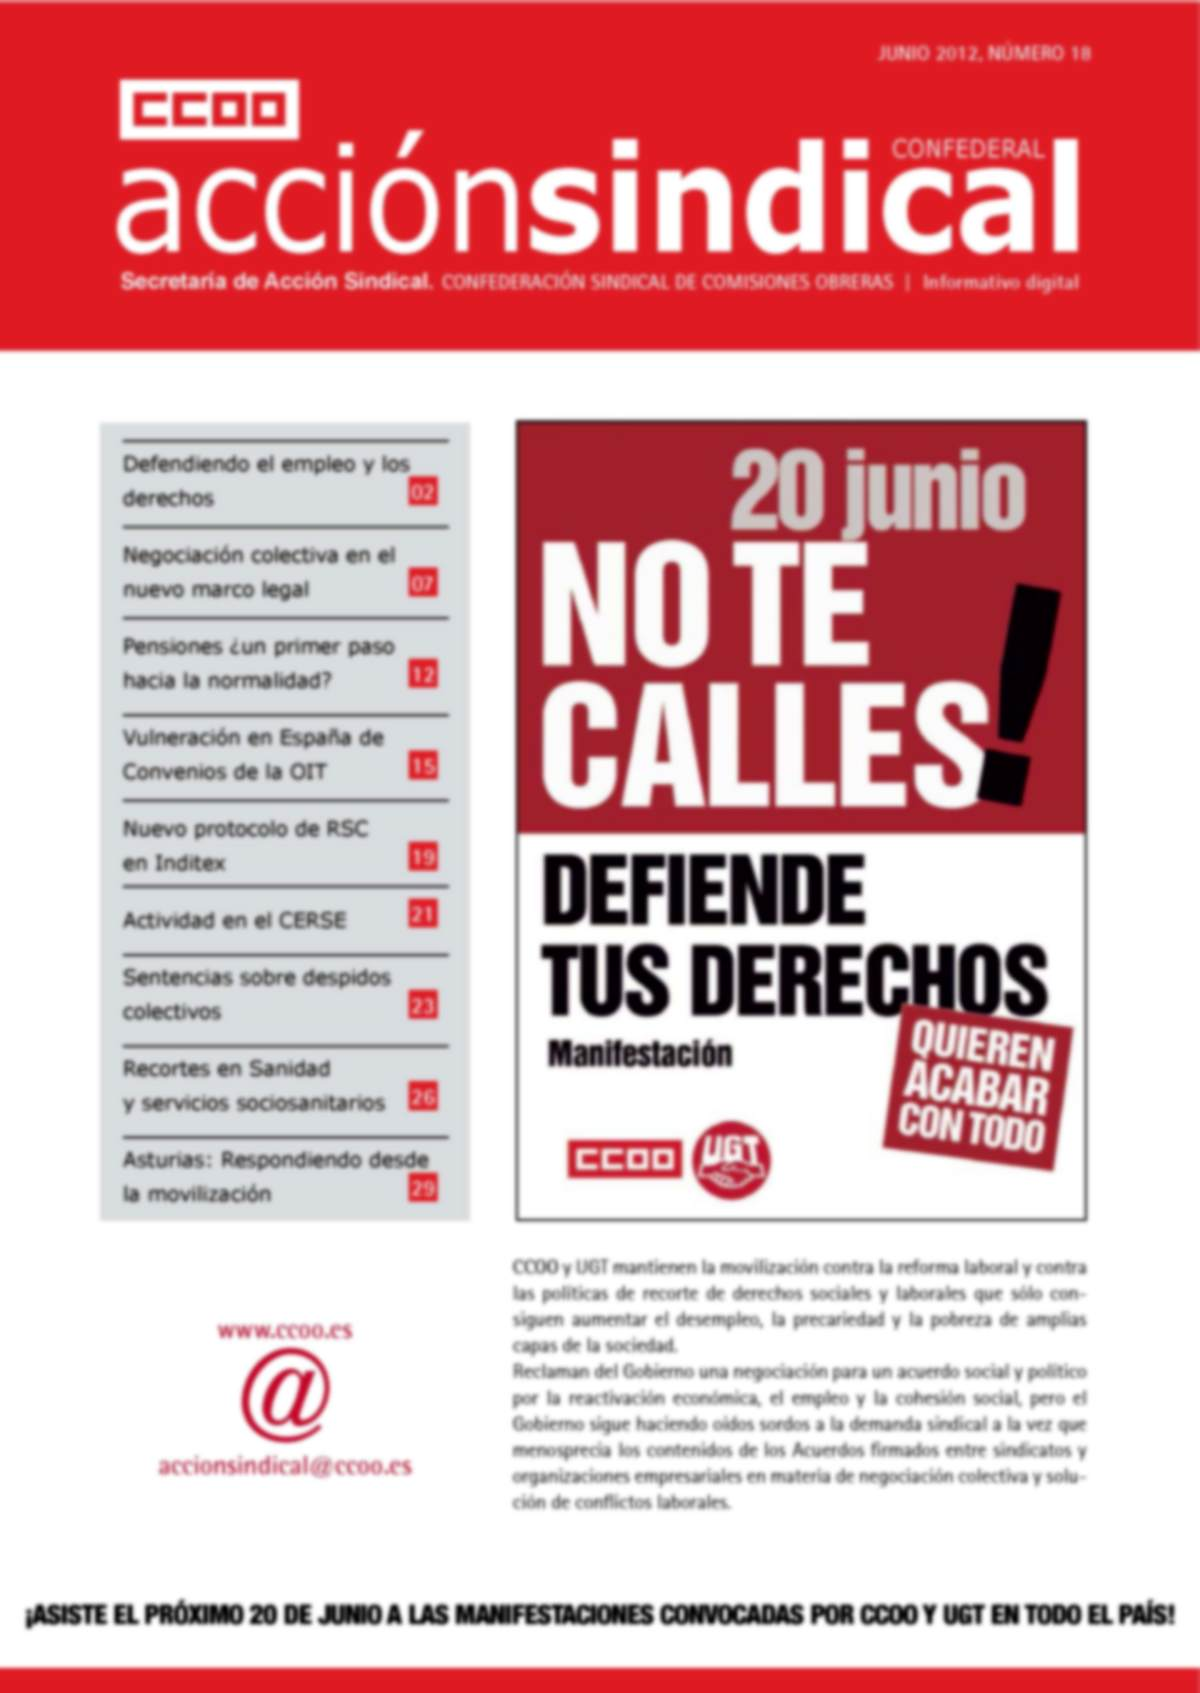 Informativo Digital Acción Sindical Confederal, nº 18